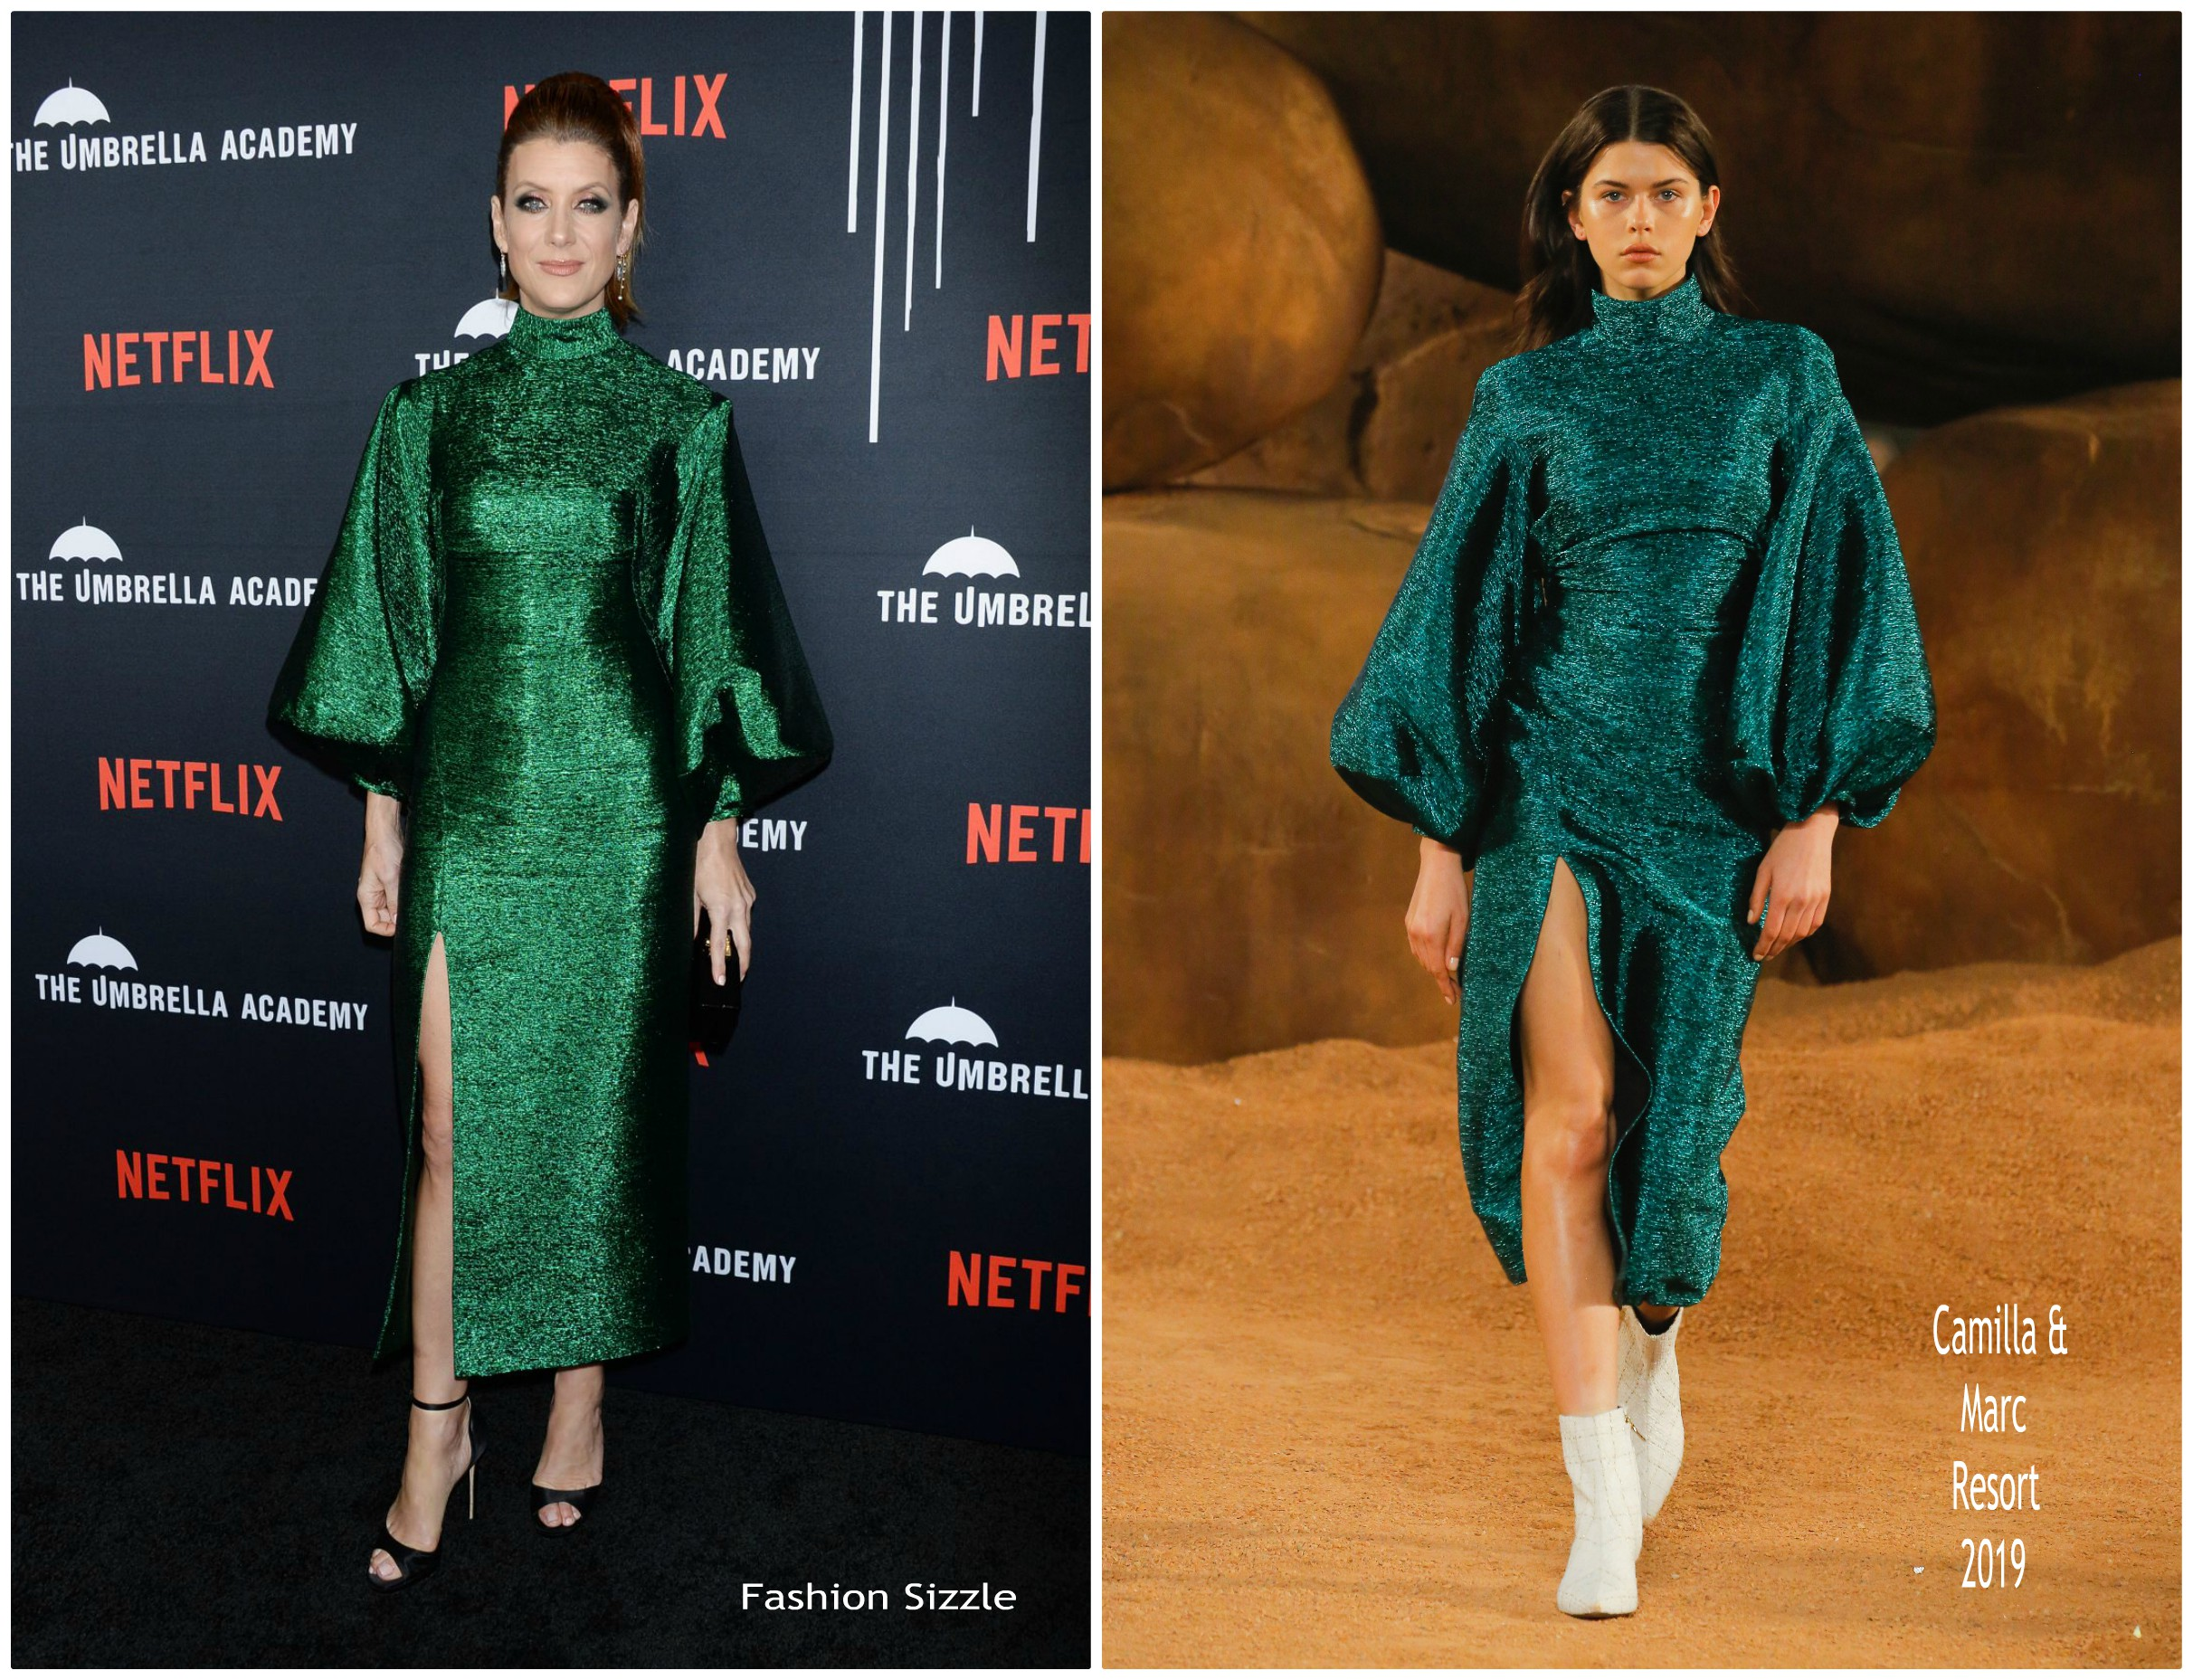 kate-walsh-in-camilla-and-marc-preimere-of-netflixs-the-umbrella-academy